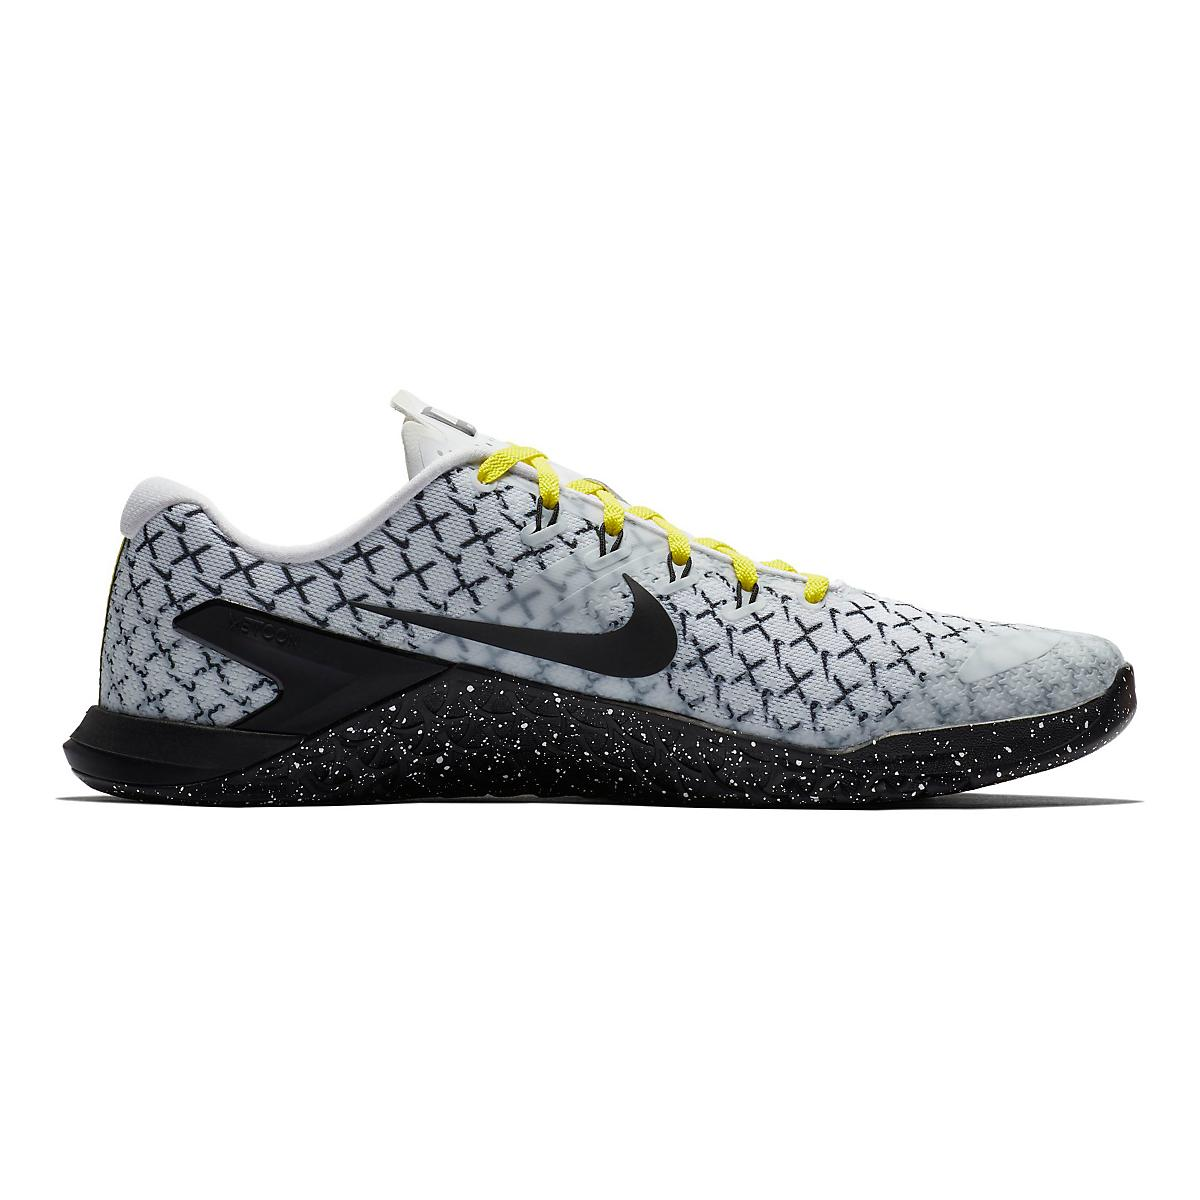 c33c5635a2be Mens Nike Metcon 4 JDQ Cross Training Shoe at Road Runner Sports